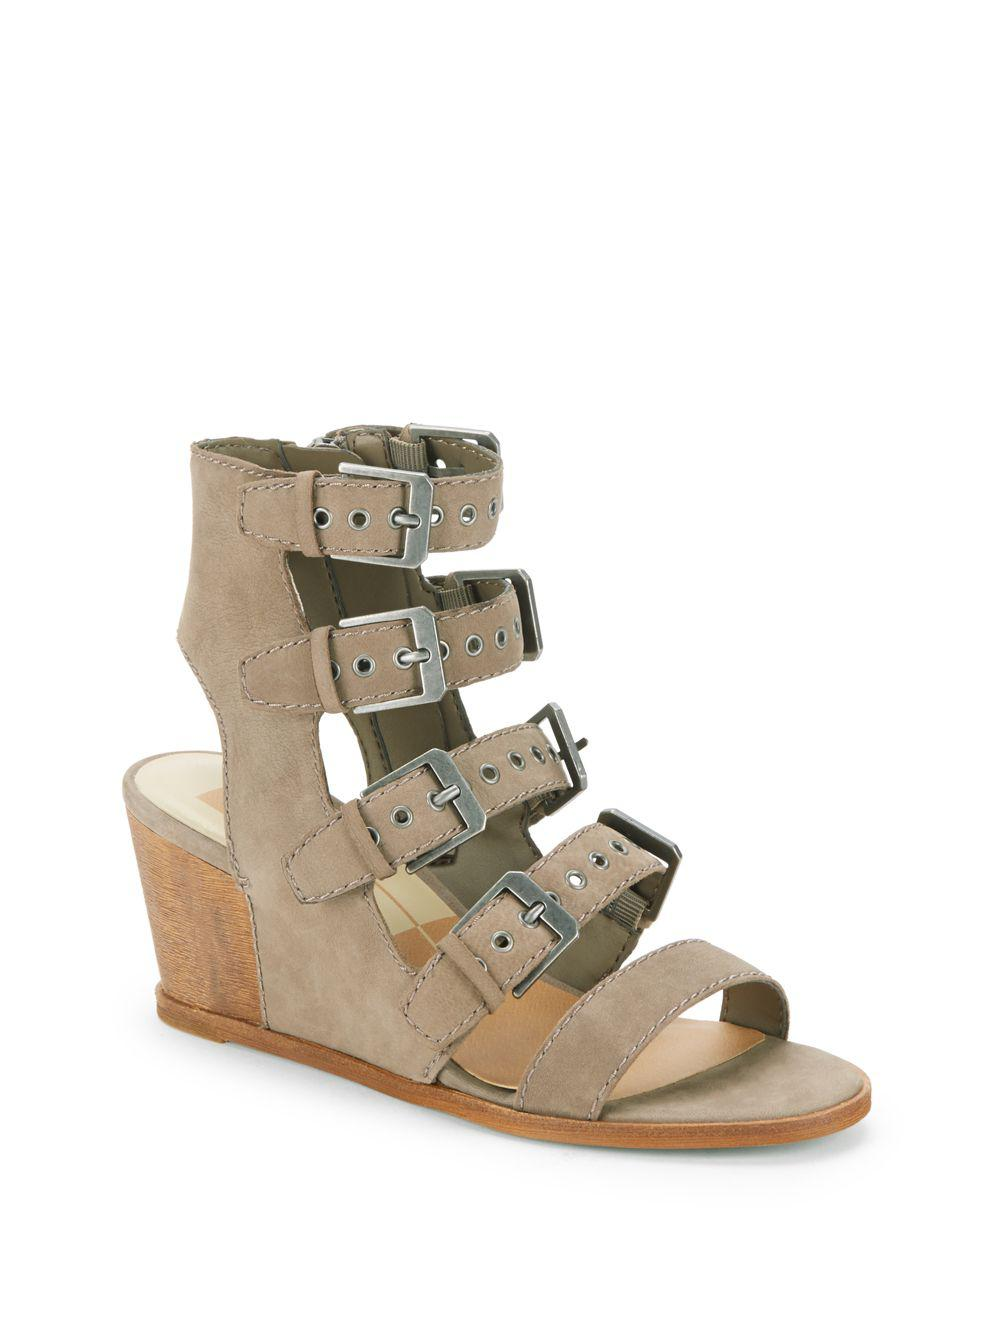 122ed0d7113076 Lyst - Dolce Vita Laken Leather Wedge Cage Sandals in Gray